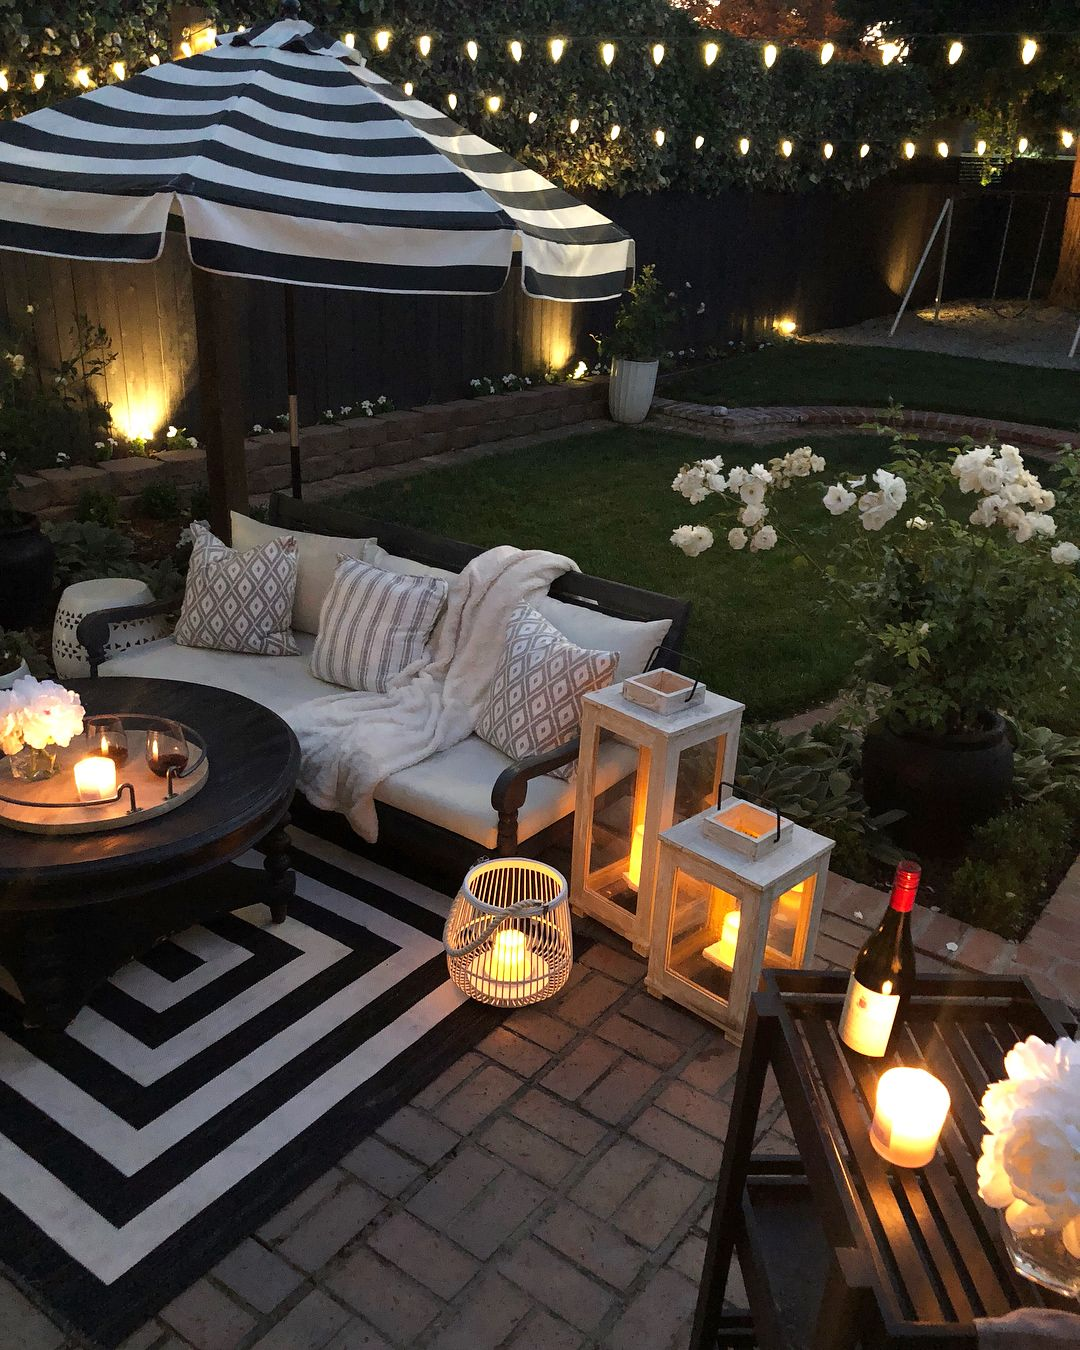 Marvelous backyard decor patio #outdoor #backyard #backyardlandscaping #backyardgarden #smallbackyard